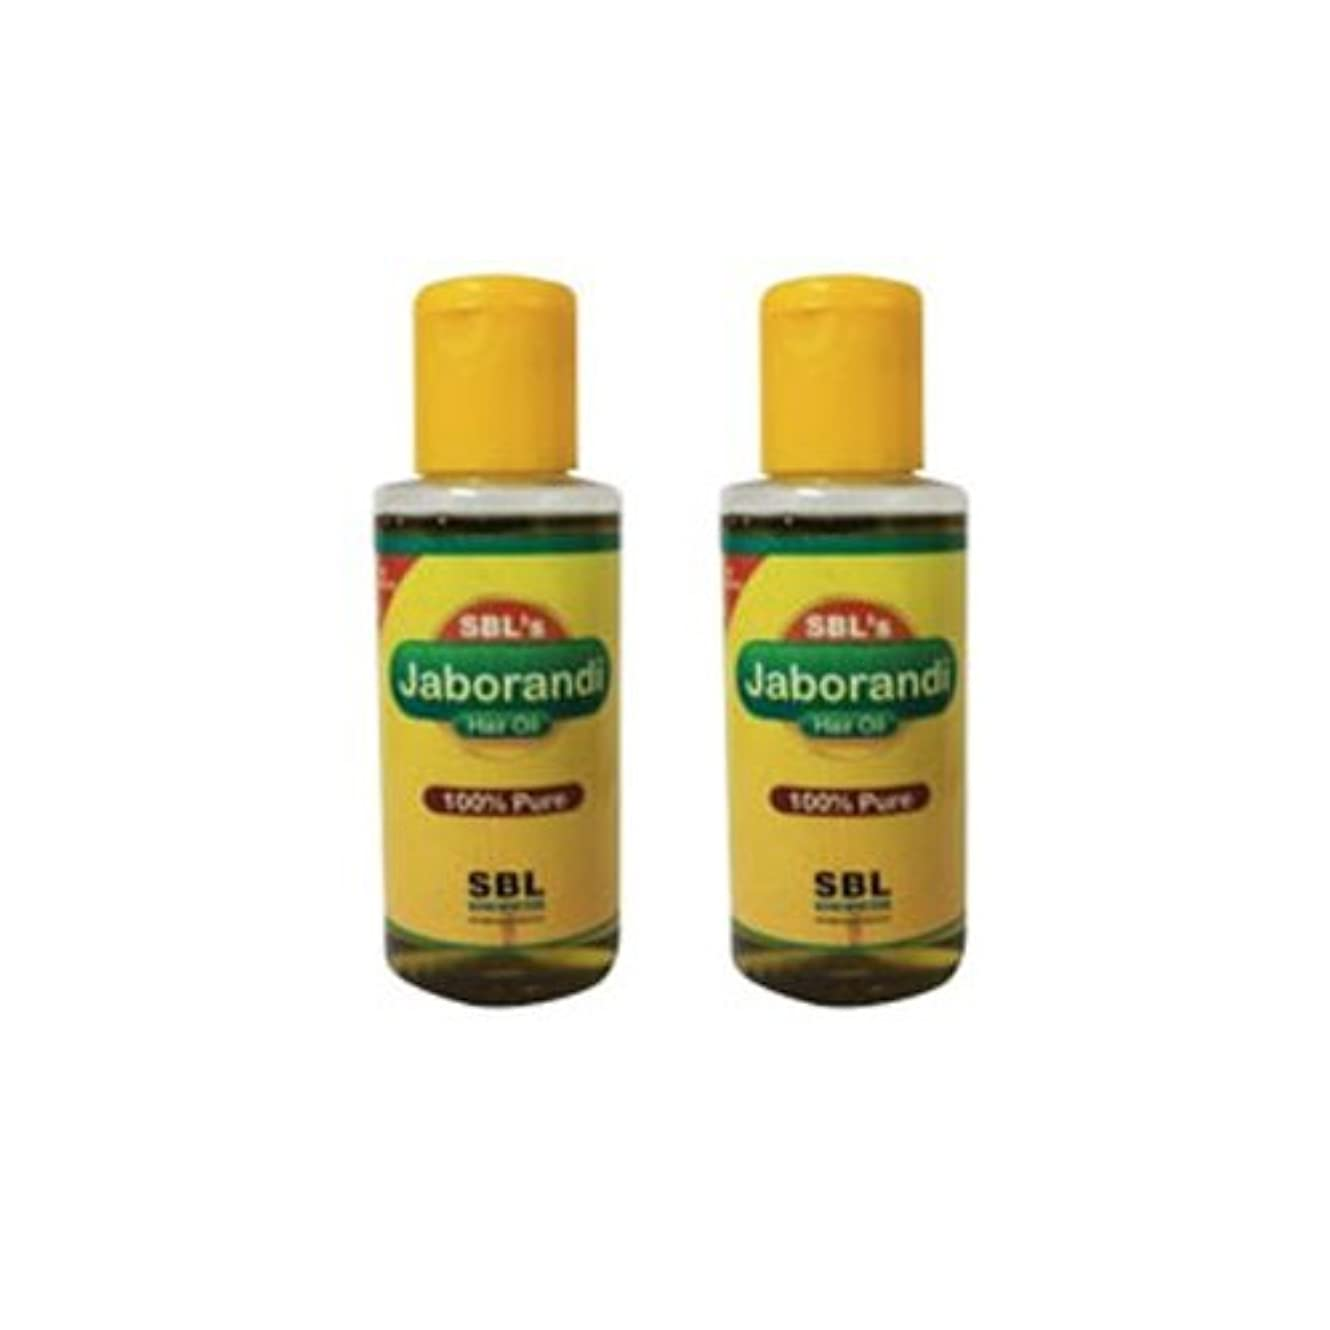 2 x Jaborandi Hair Oil. Shipping Only By - USPS / FedEX by SBL